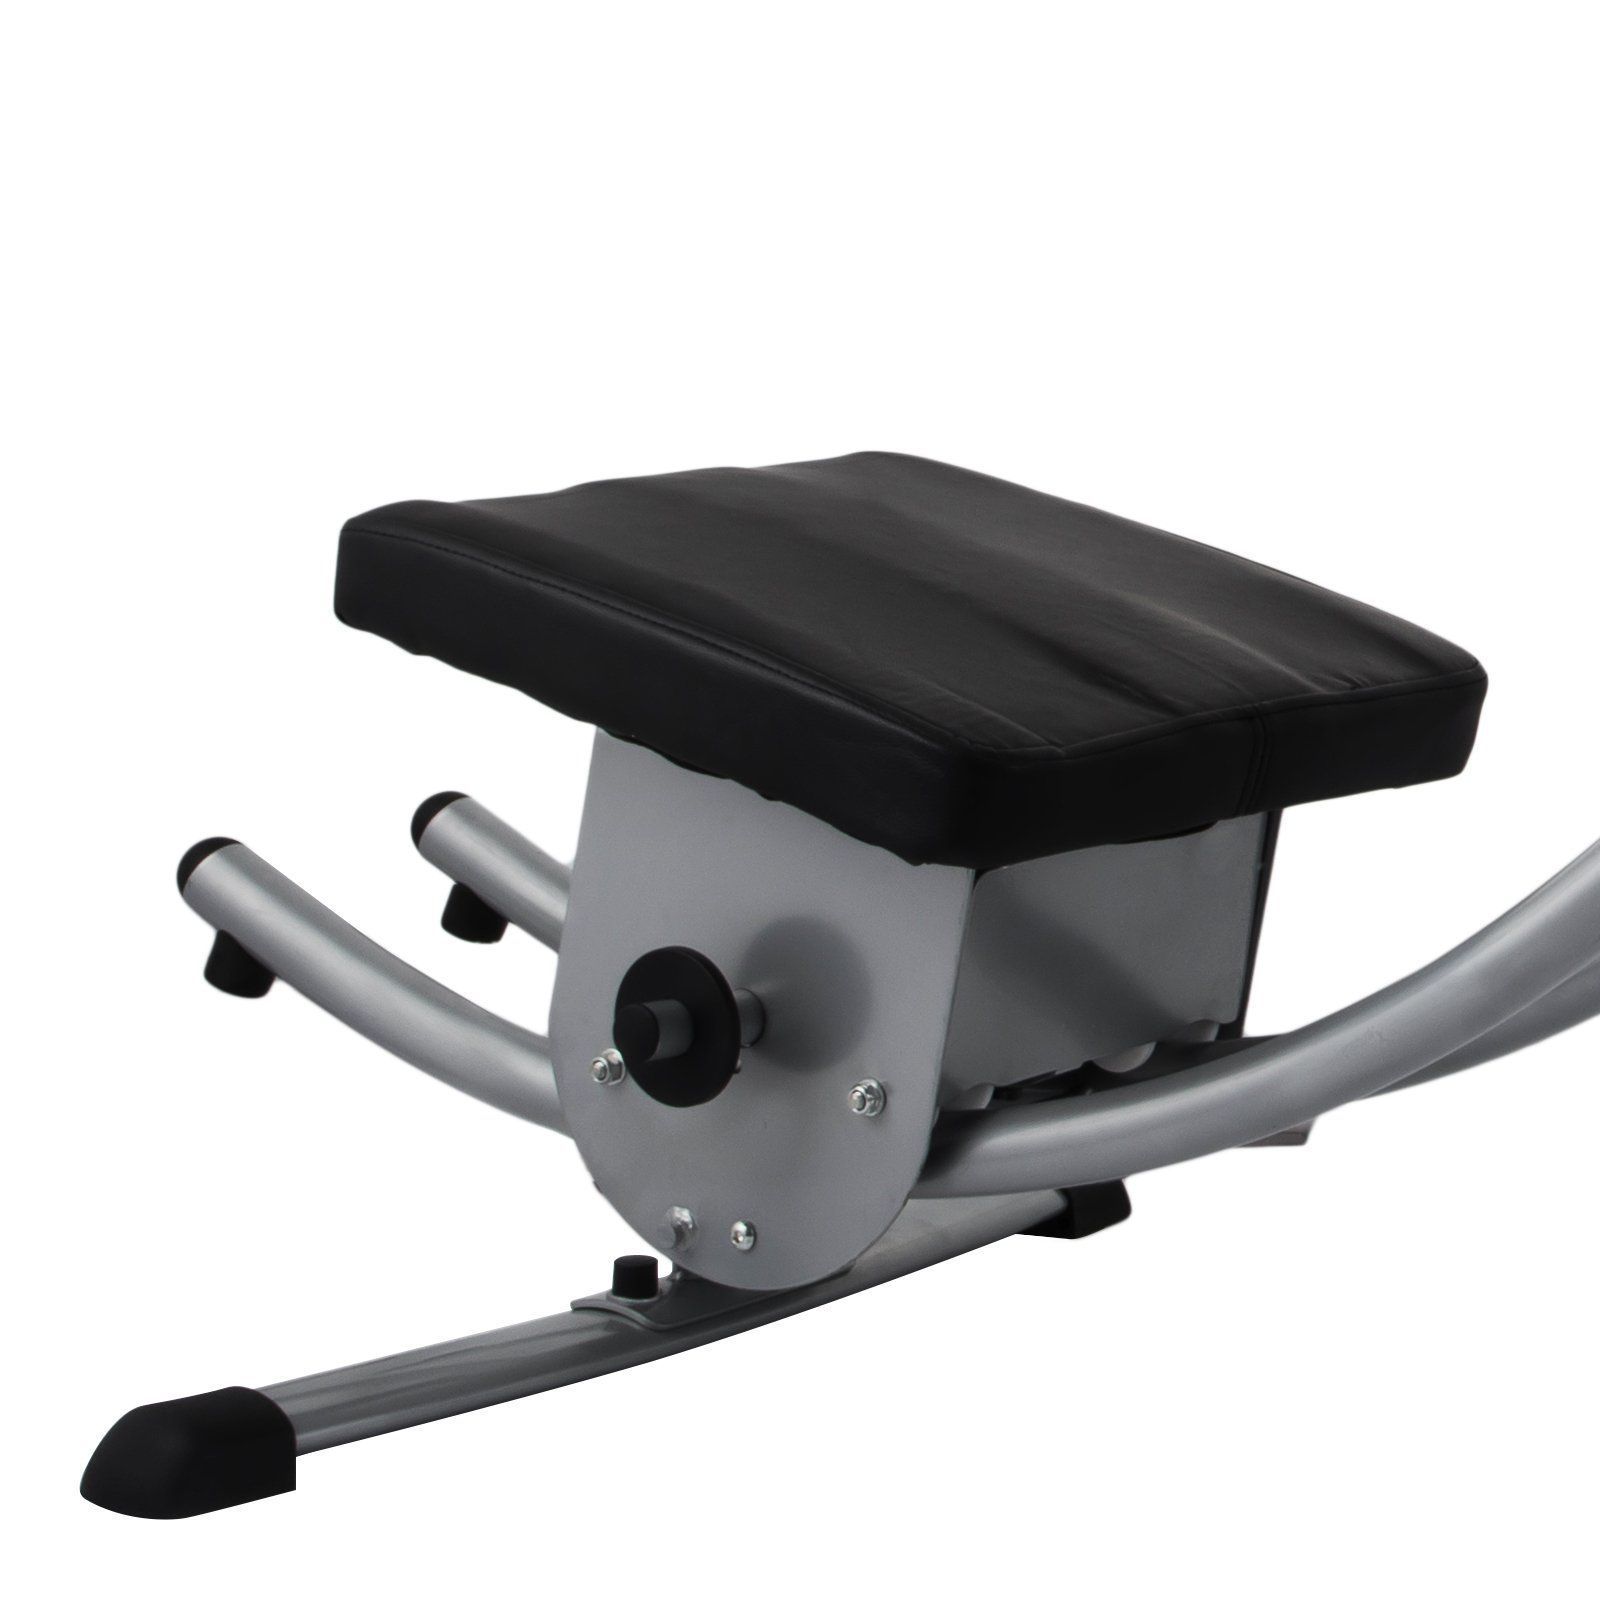 Popsport Abdomen Machine 330LBS Abdominal Coaster Abdomen Exercise Equipment with Adjustable Seat for Abdominal Muscle Training (Ab Coaster with 4 Dumbbells and wriggled Plate) by Popsport (Image #6)